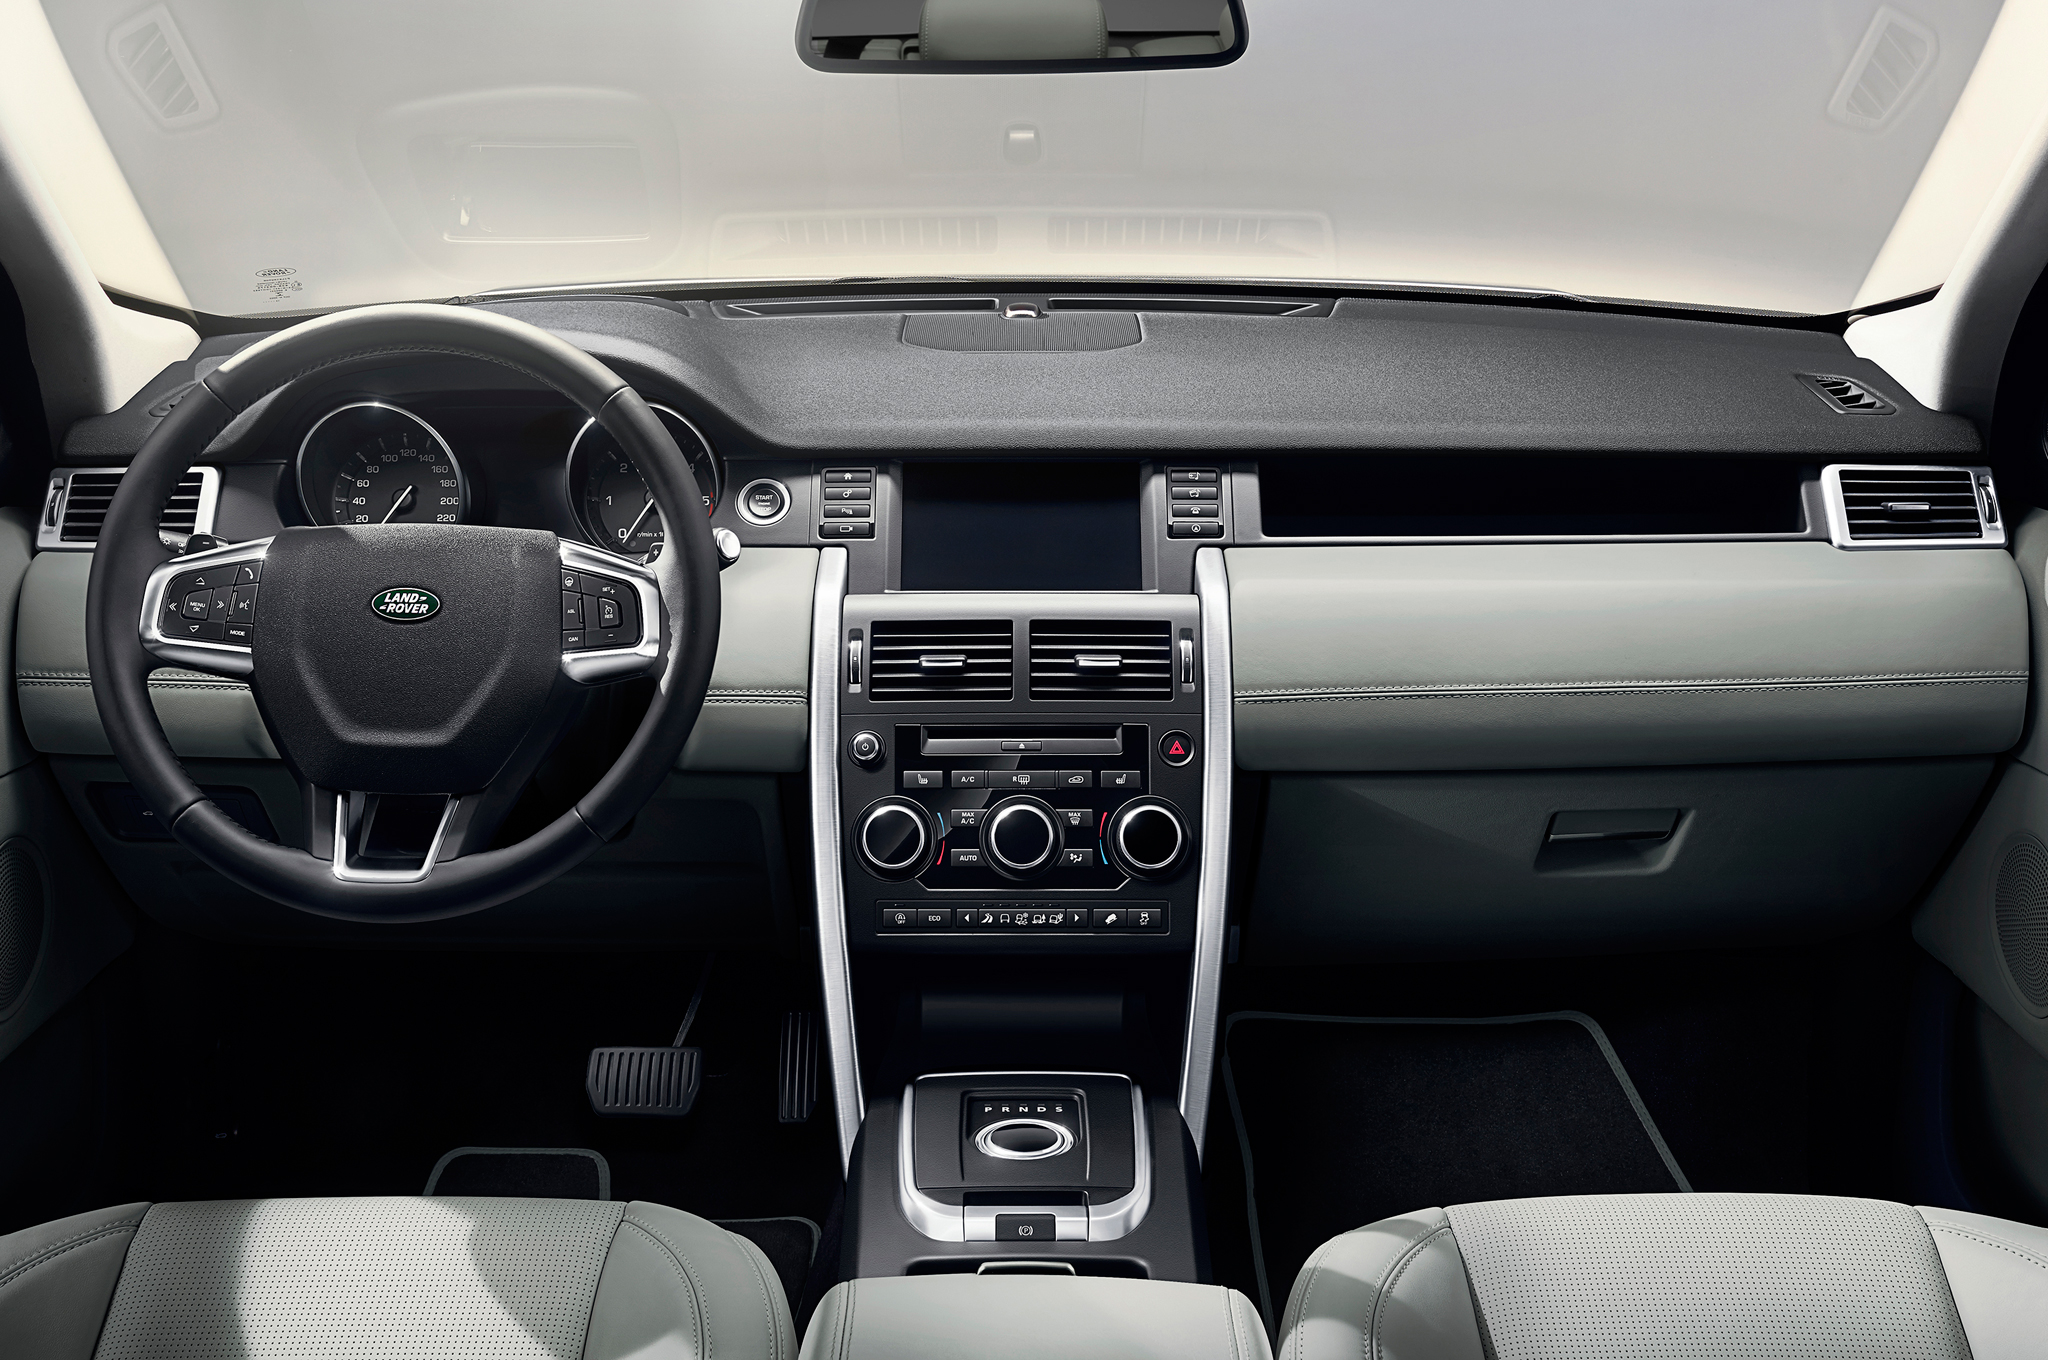 Riding In Comfort The Interior Of The 2015 Land Rover Discovery